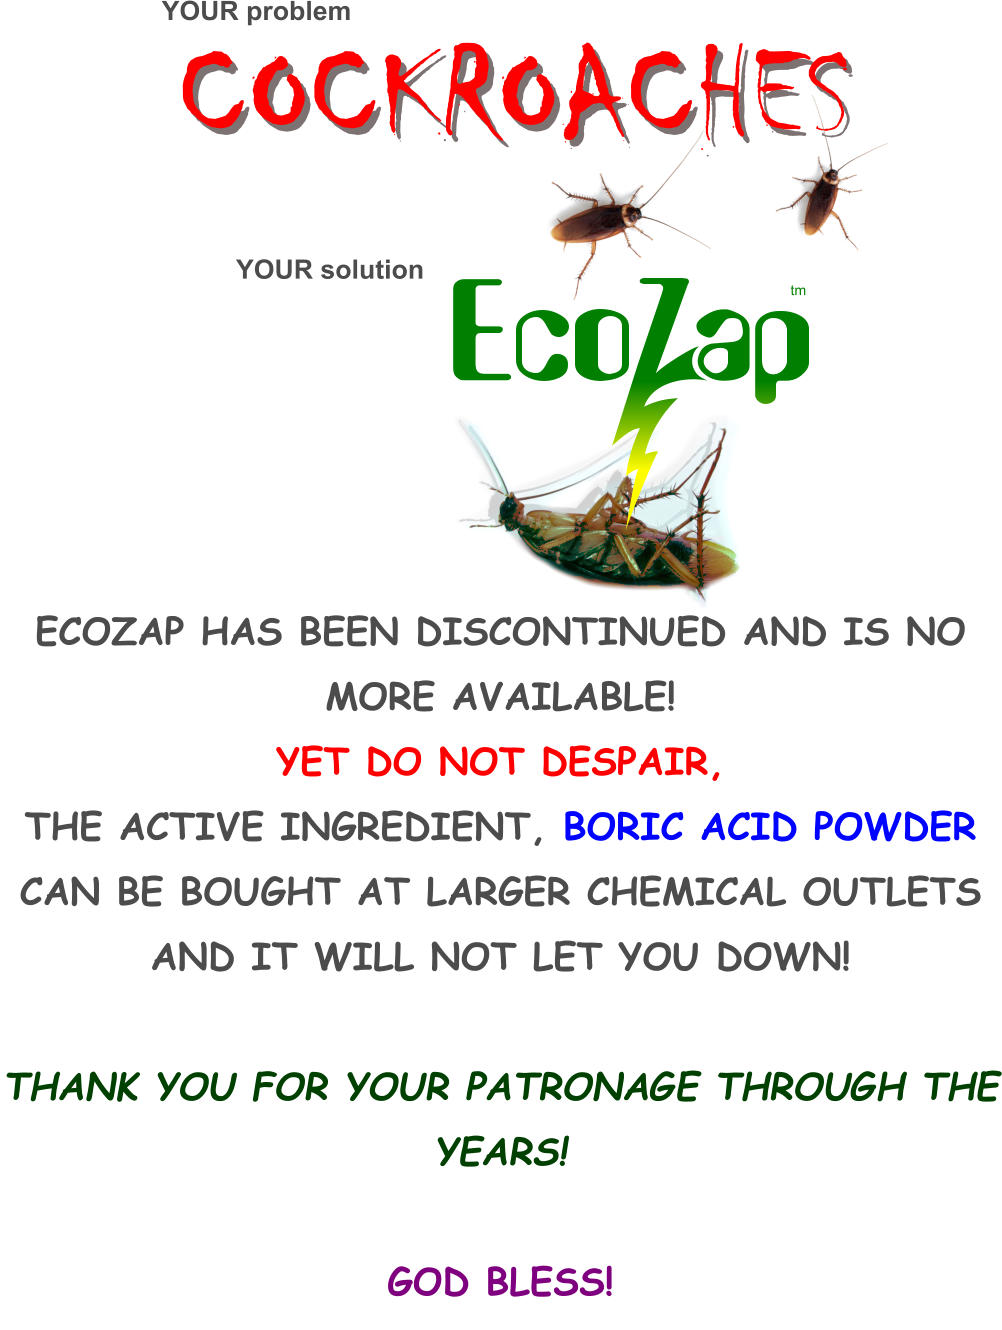 COCKROACHES         ECOZAP HAS BEEN DISCONTINUED AND IS NO MORE AVAILABLE! YET DO NOT DESPAIR,  THE ACTIVE INGREDIENT, BORIC ACID POWDER  CAN BE BOUGHT AT LARGER CHEMICAL OUTLETS AND IT WILL NOT LET YOU DOWN!  THANK YOU FOR YOUR PATRONAGE THROUGH THE YEARS!  GOD BLESS! YOUR problem YOUR solution tm